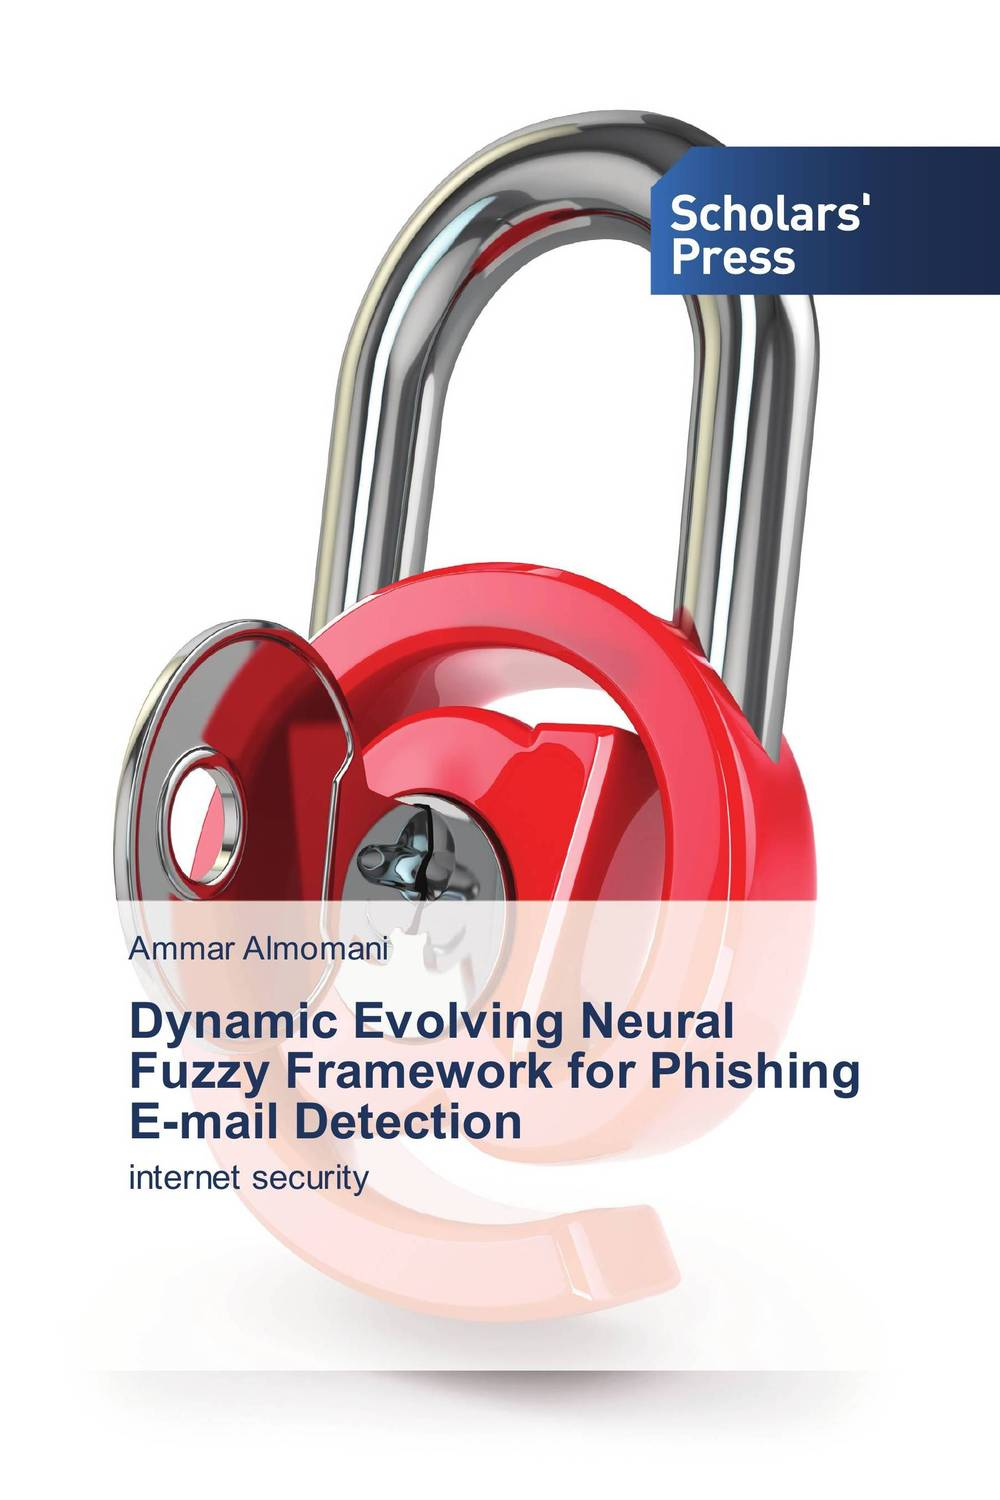 Dynamic Evolving Neural Fuzzy Framework for Phishing E-mail Detection aygun nusrat alasgarova financial risk forecasting using neuro fuzzy approach